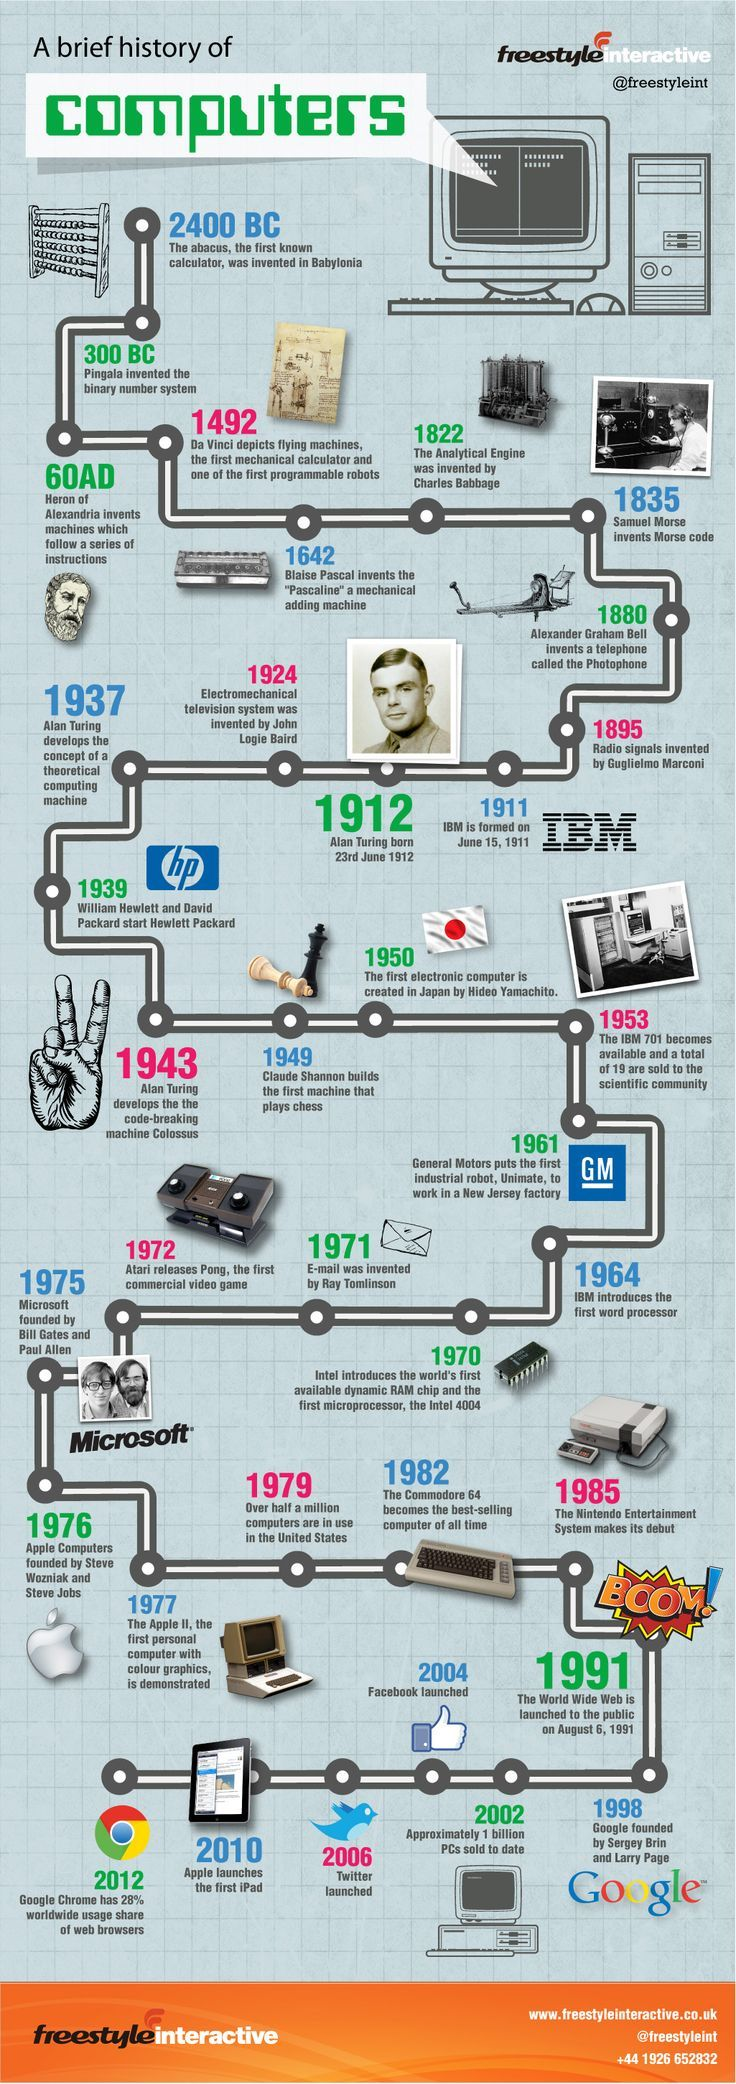 A brief history of computers.